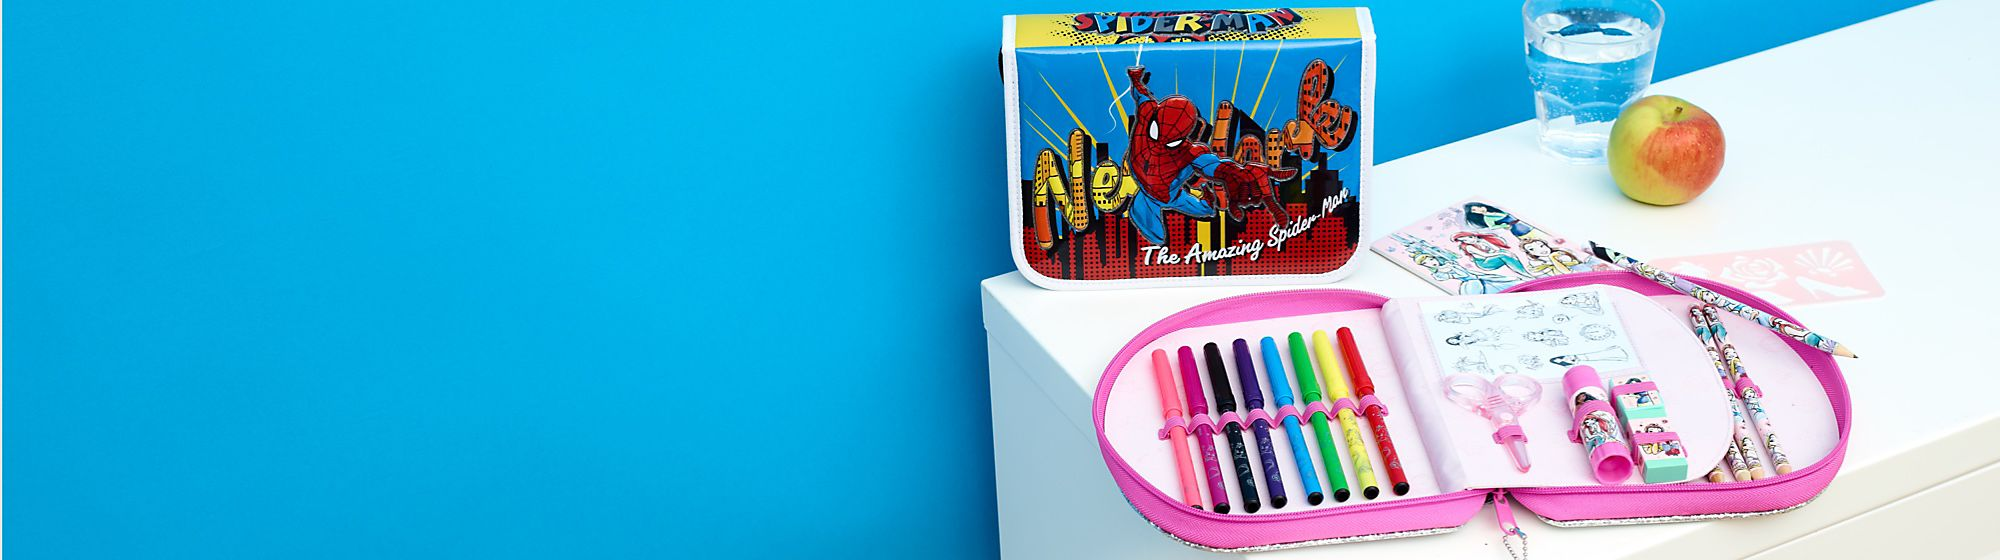 Colouring & Creativity Get creative and discover our range of colouring books and stationery sets featuring your favourite Disney, Pixar, Star Wars and Marvel characters